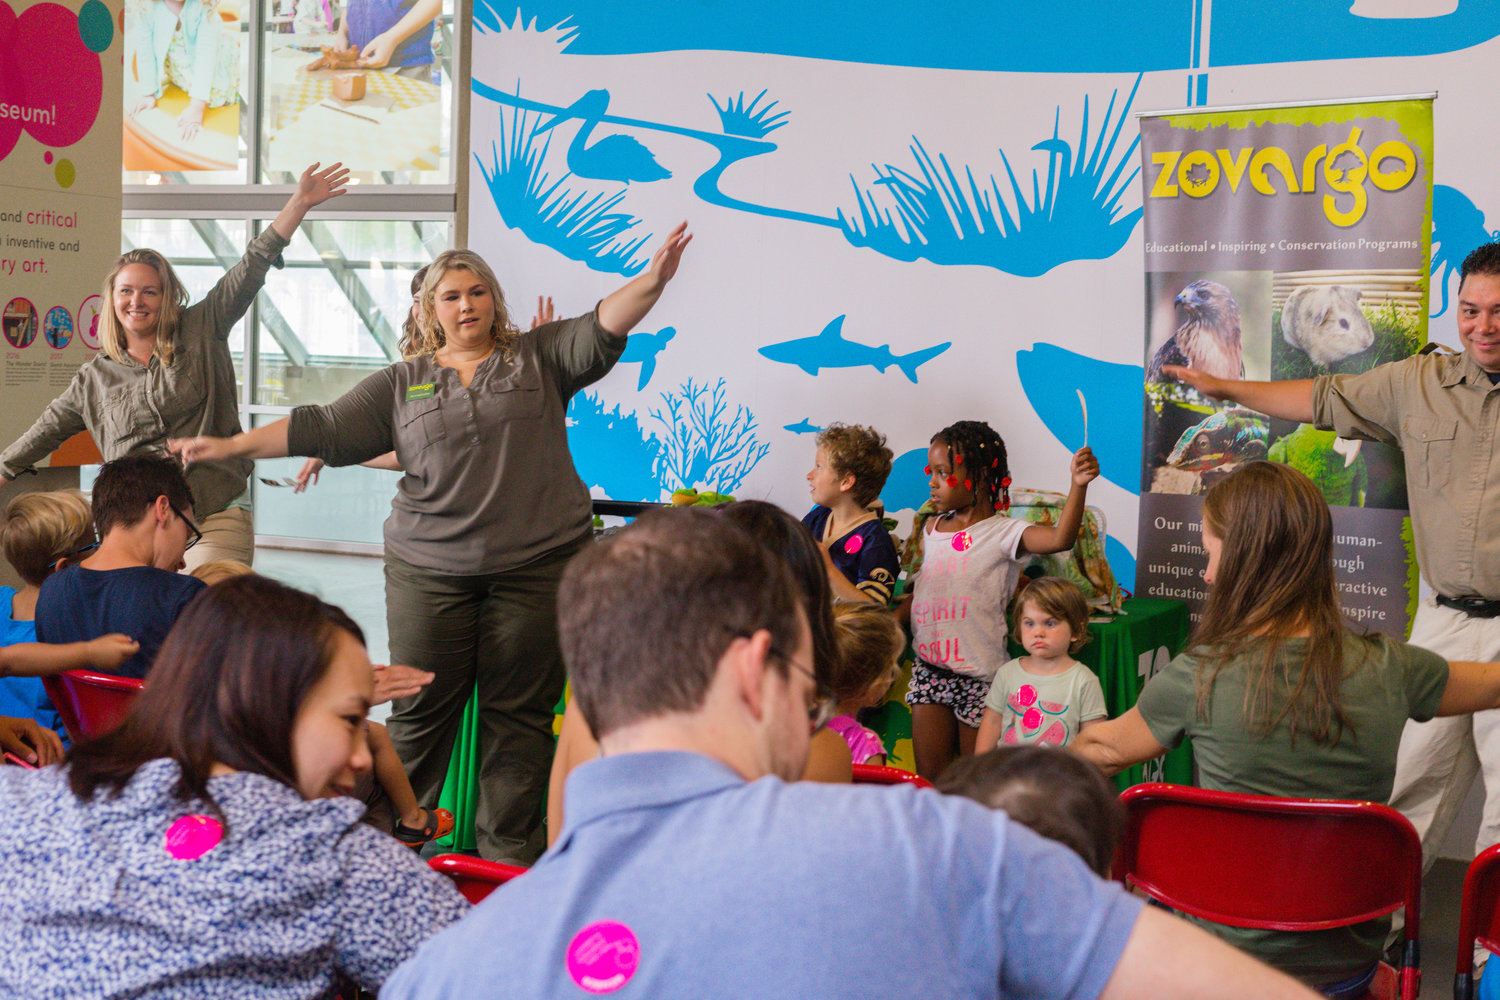 Community partner Zovargo at the New Children's Museum